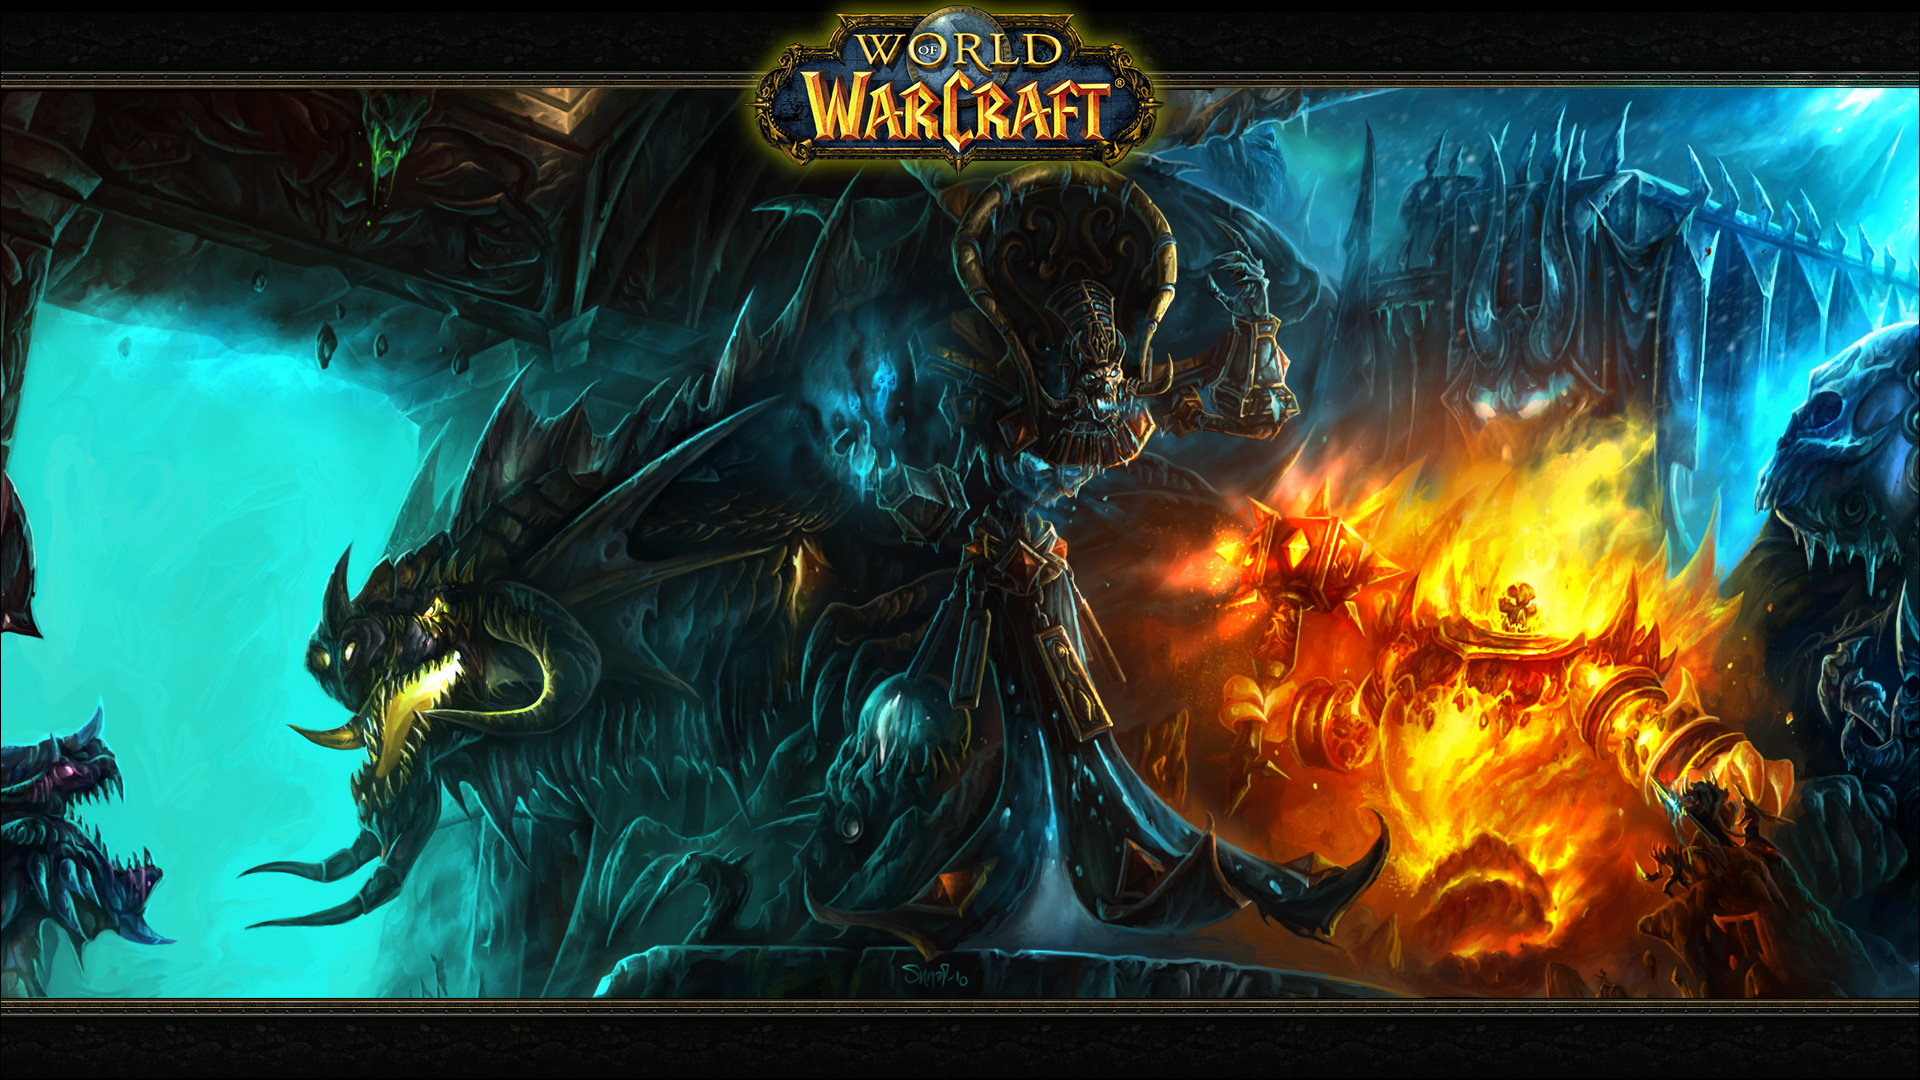 World Of Warcraft HD Wallpaper Background Image 1920x1080 ID 1920x1080